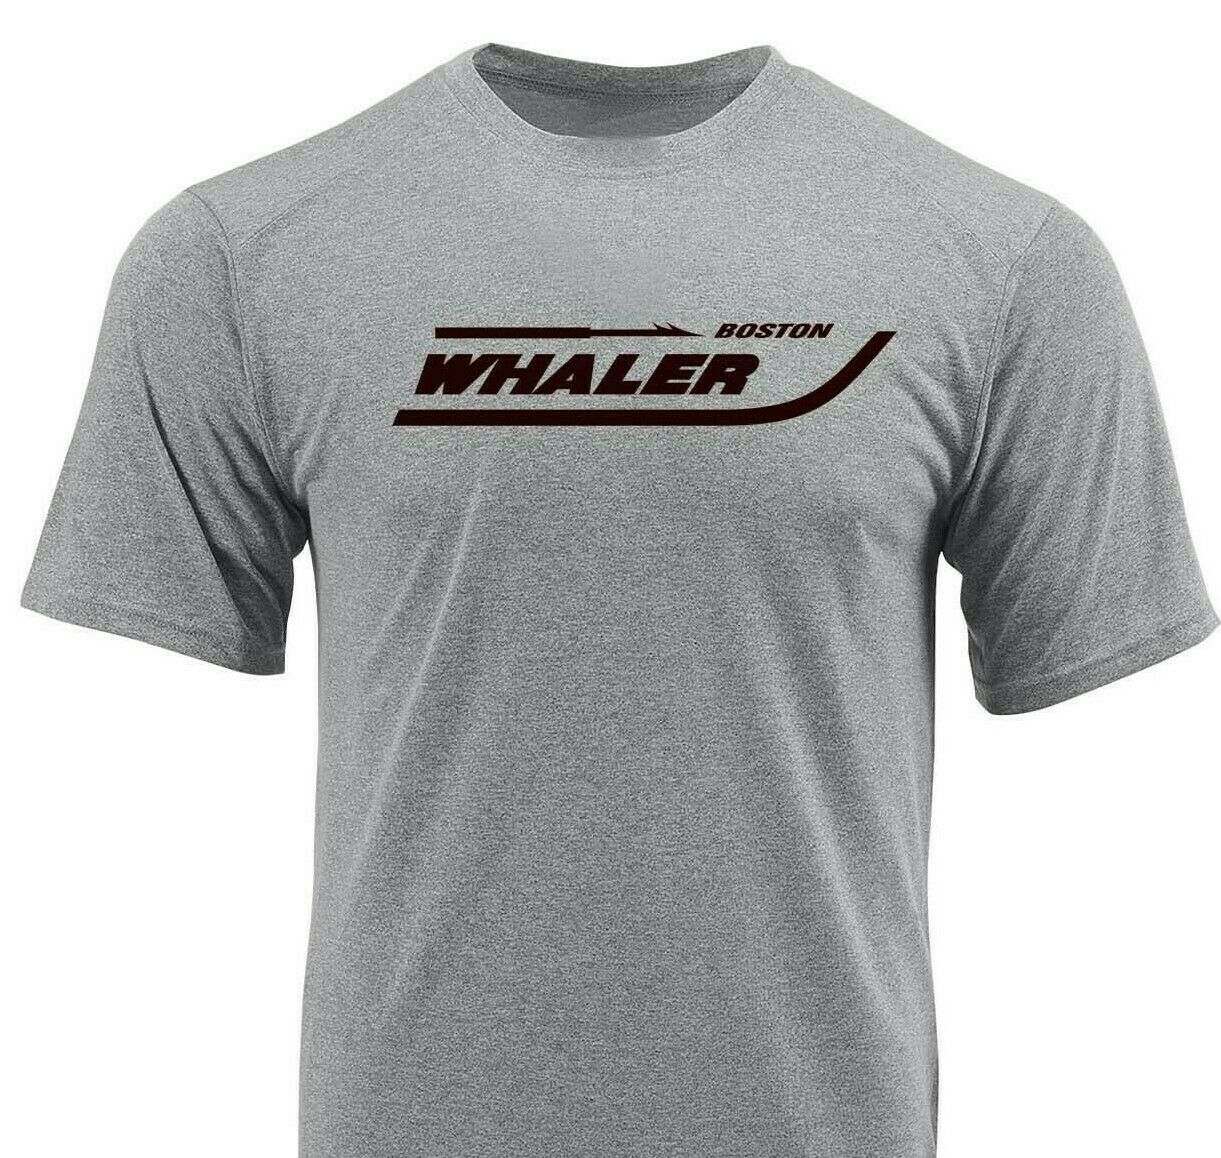 Boston Whaler Dri Fit T-shirt sun shirt UPF 50 active wear tee fishing boating